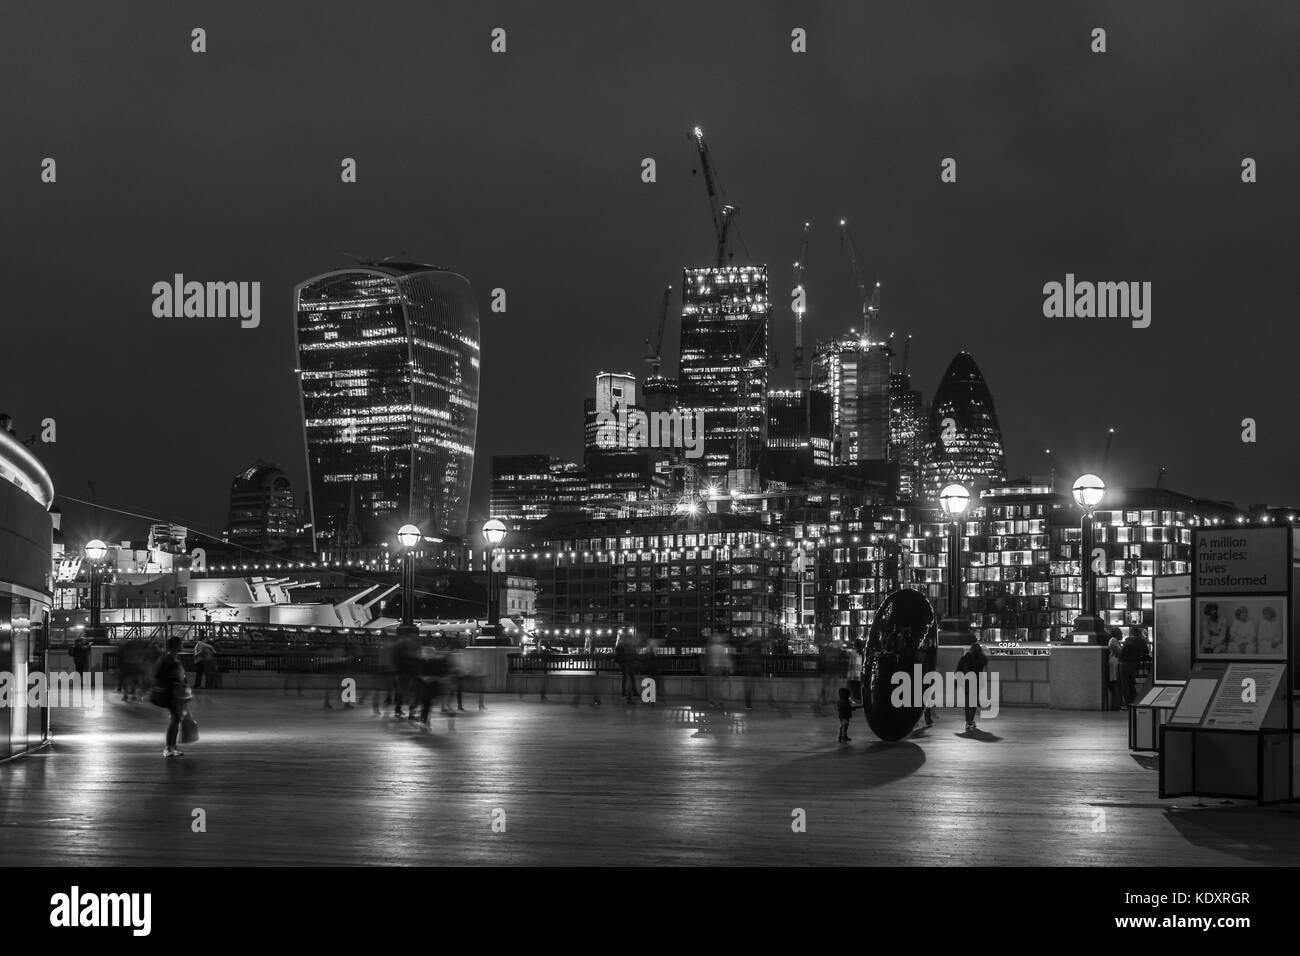 Black And White Of The Financial District Skyline At Night 2017 City London